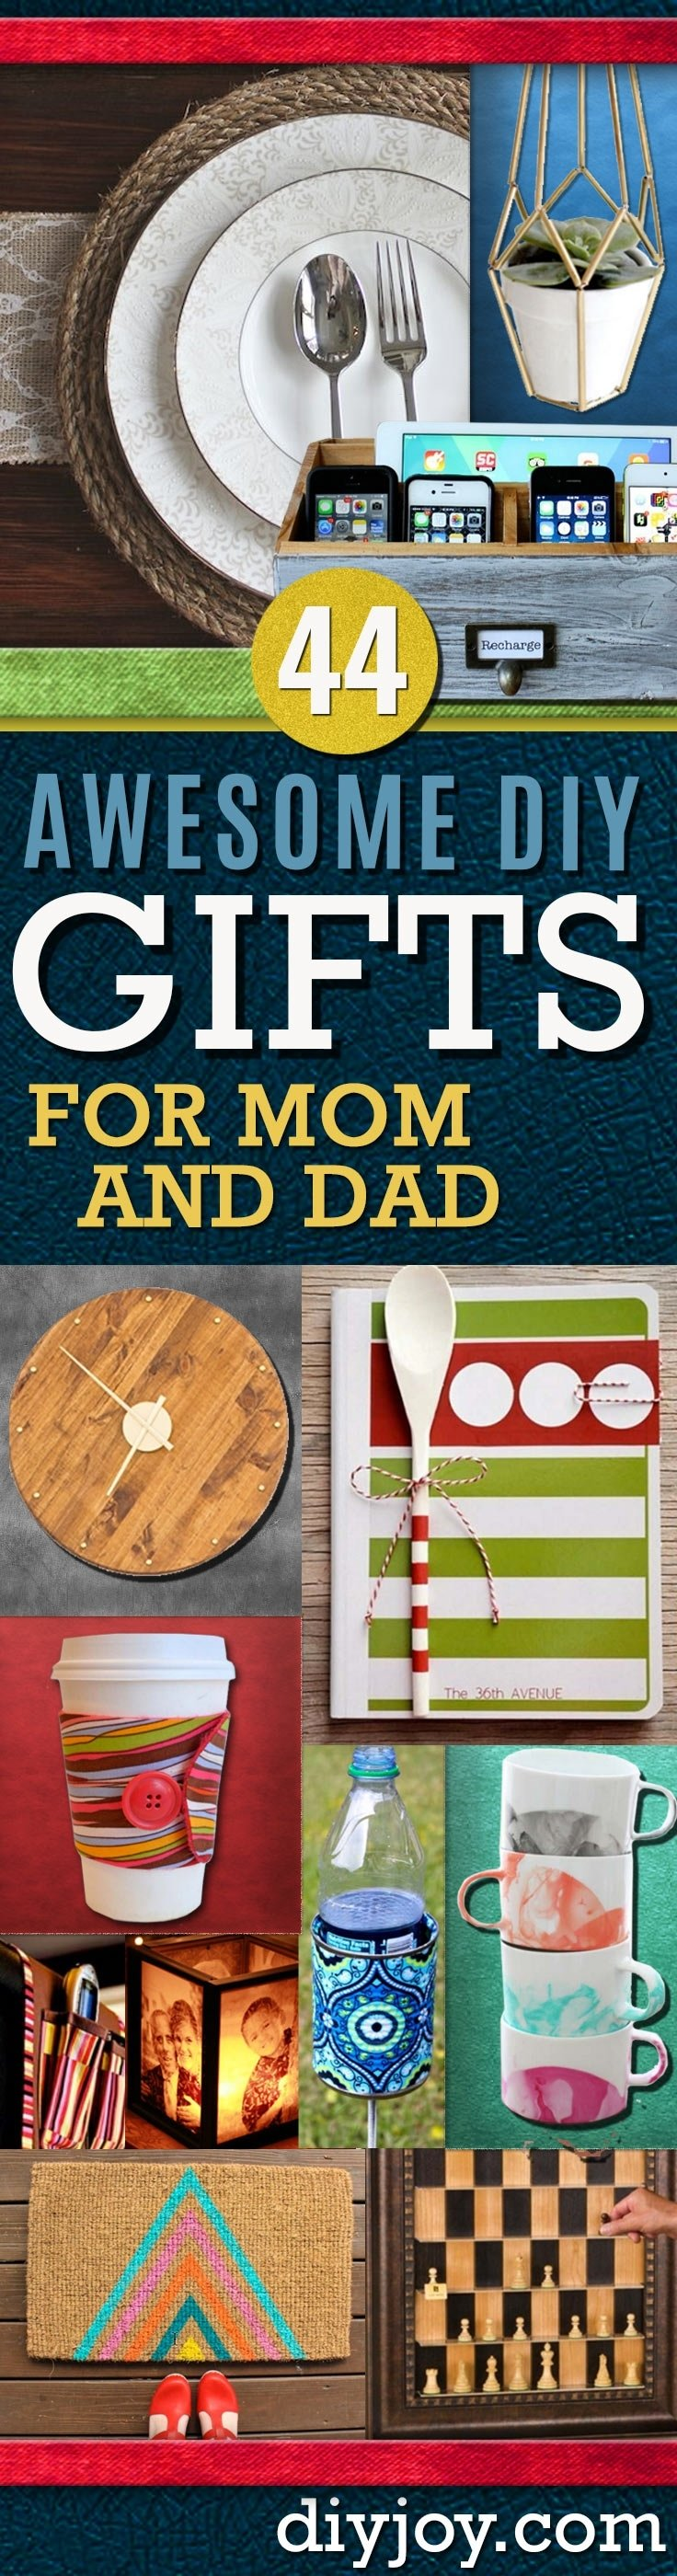 10 Famous Christmas Present Ideas For Dad awesome diy gift ideas mom and dad will love 16